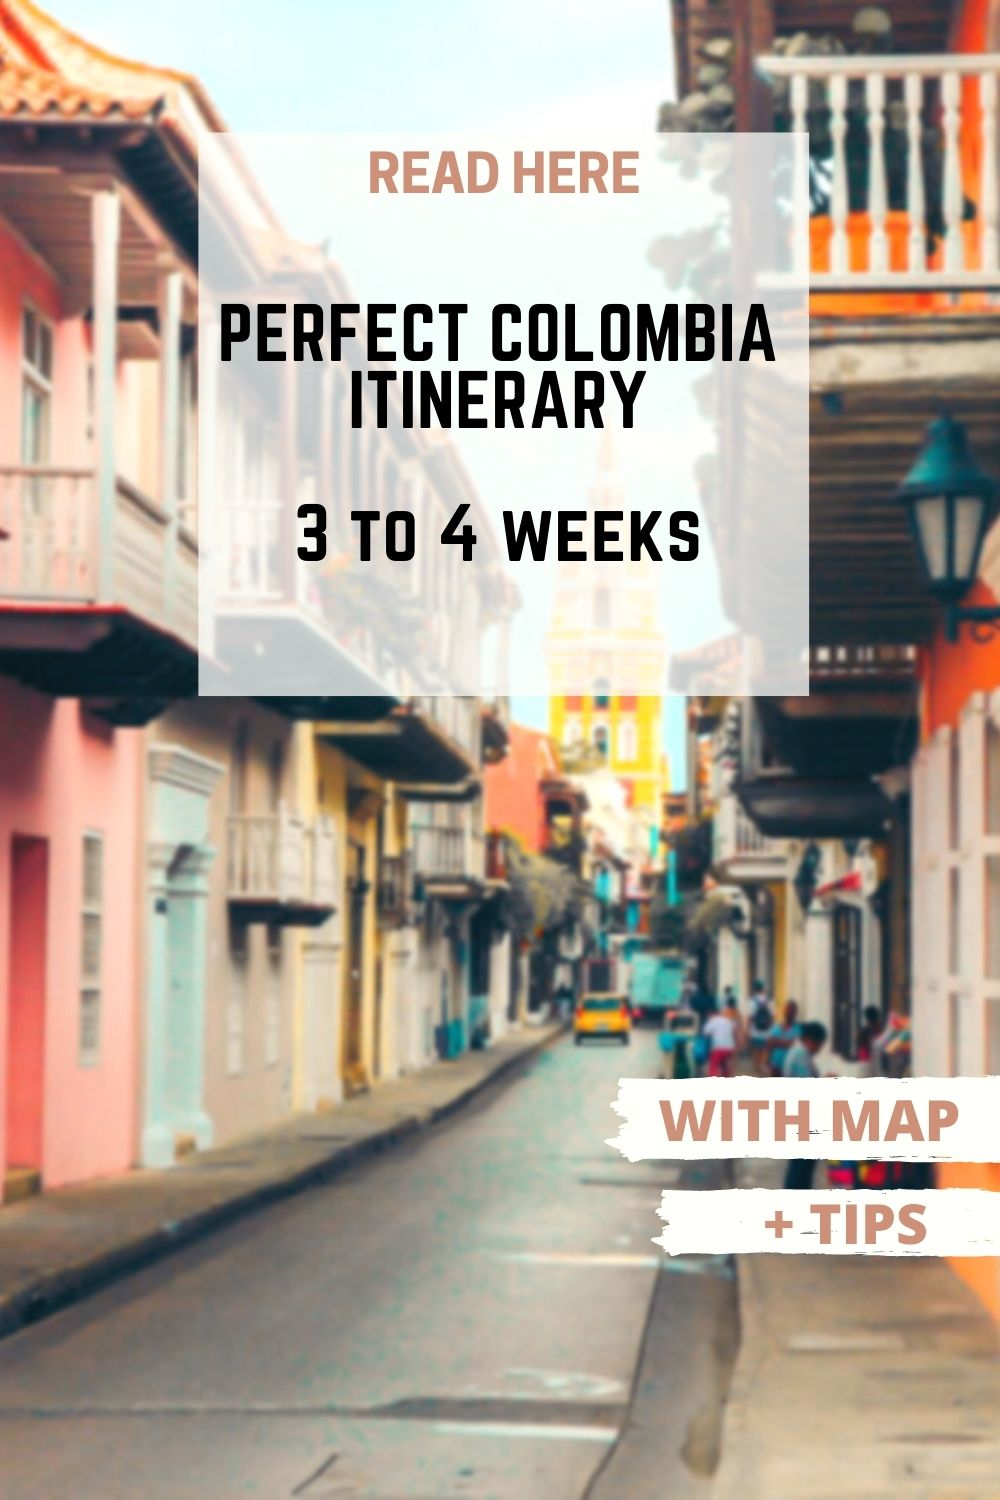 Perfect Colombia itinerary for travel 3 to 4 week